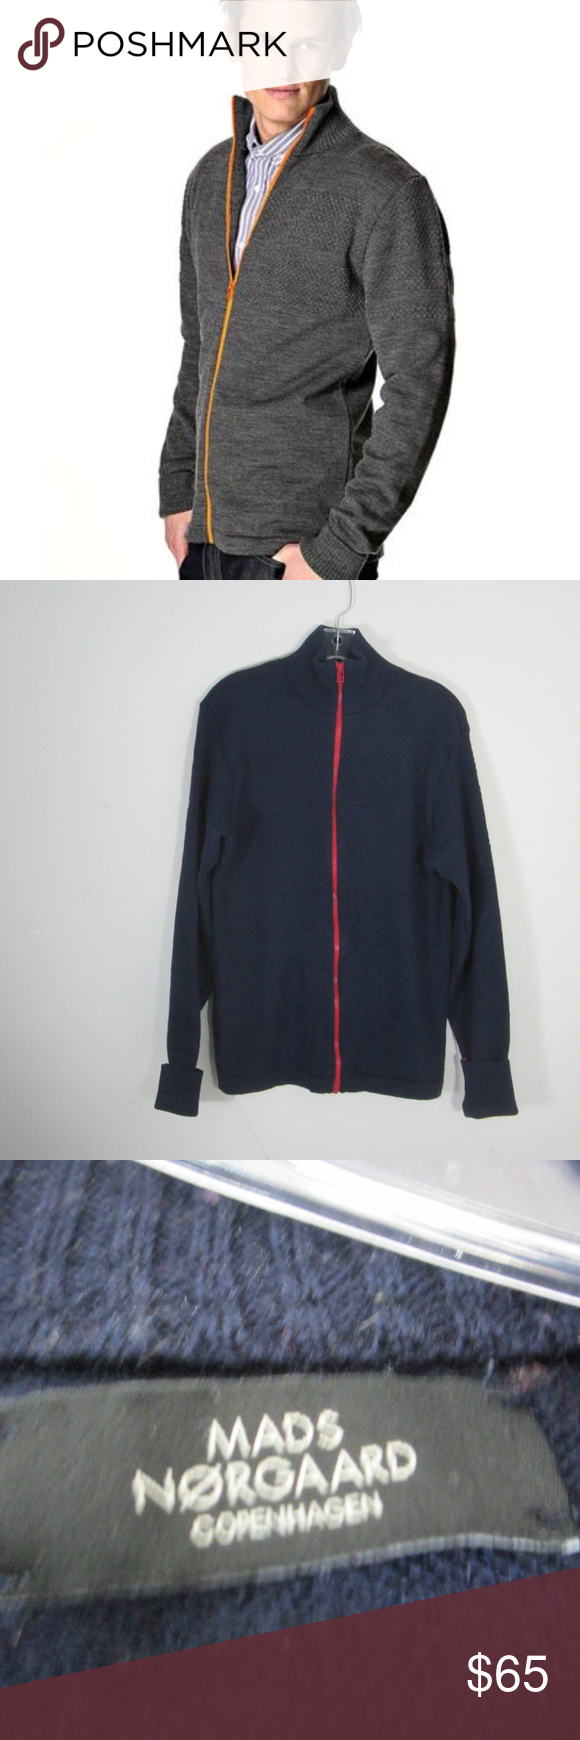 Mens Mads Norgaard Klemens Cardigan Sweater Size S Mads